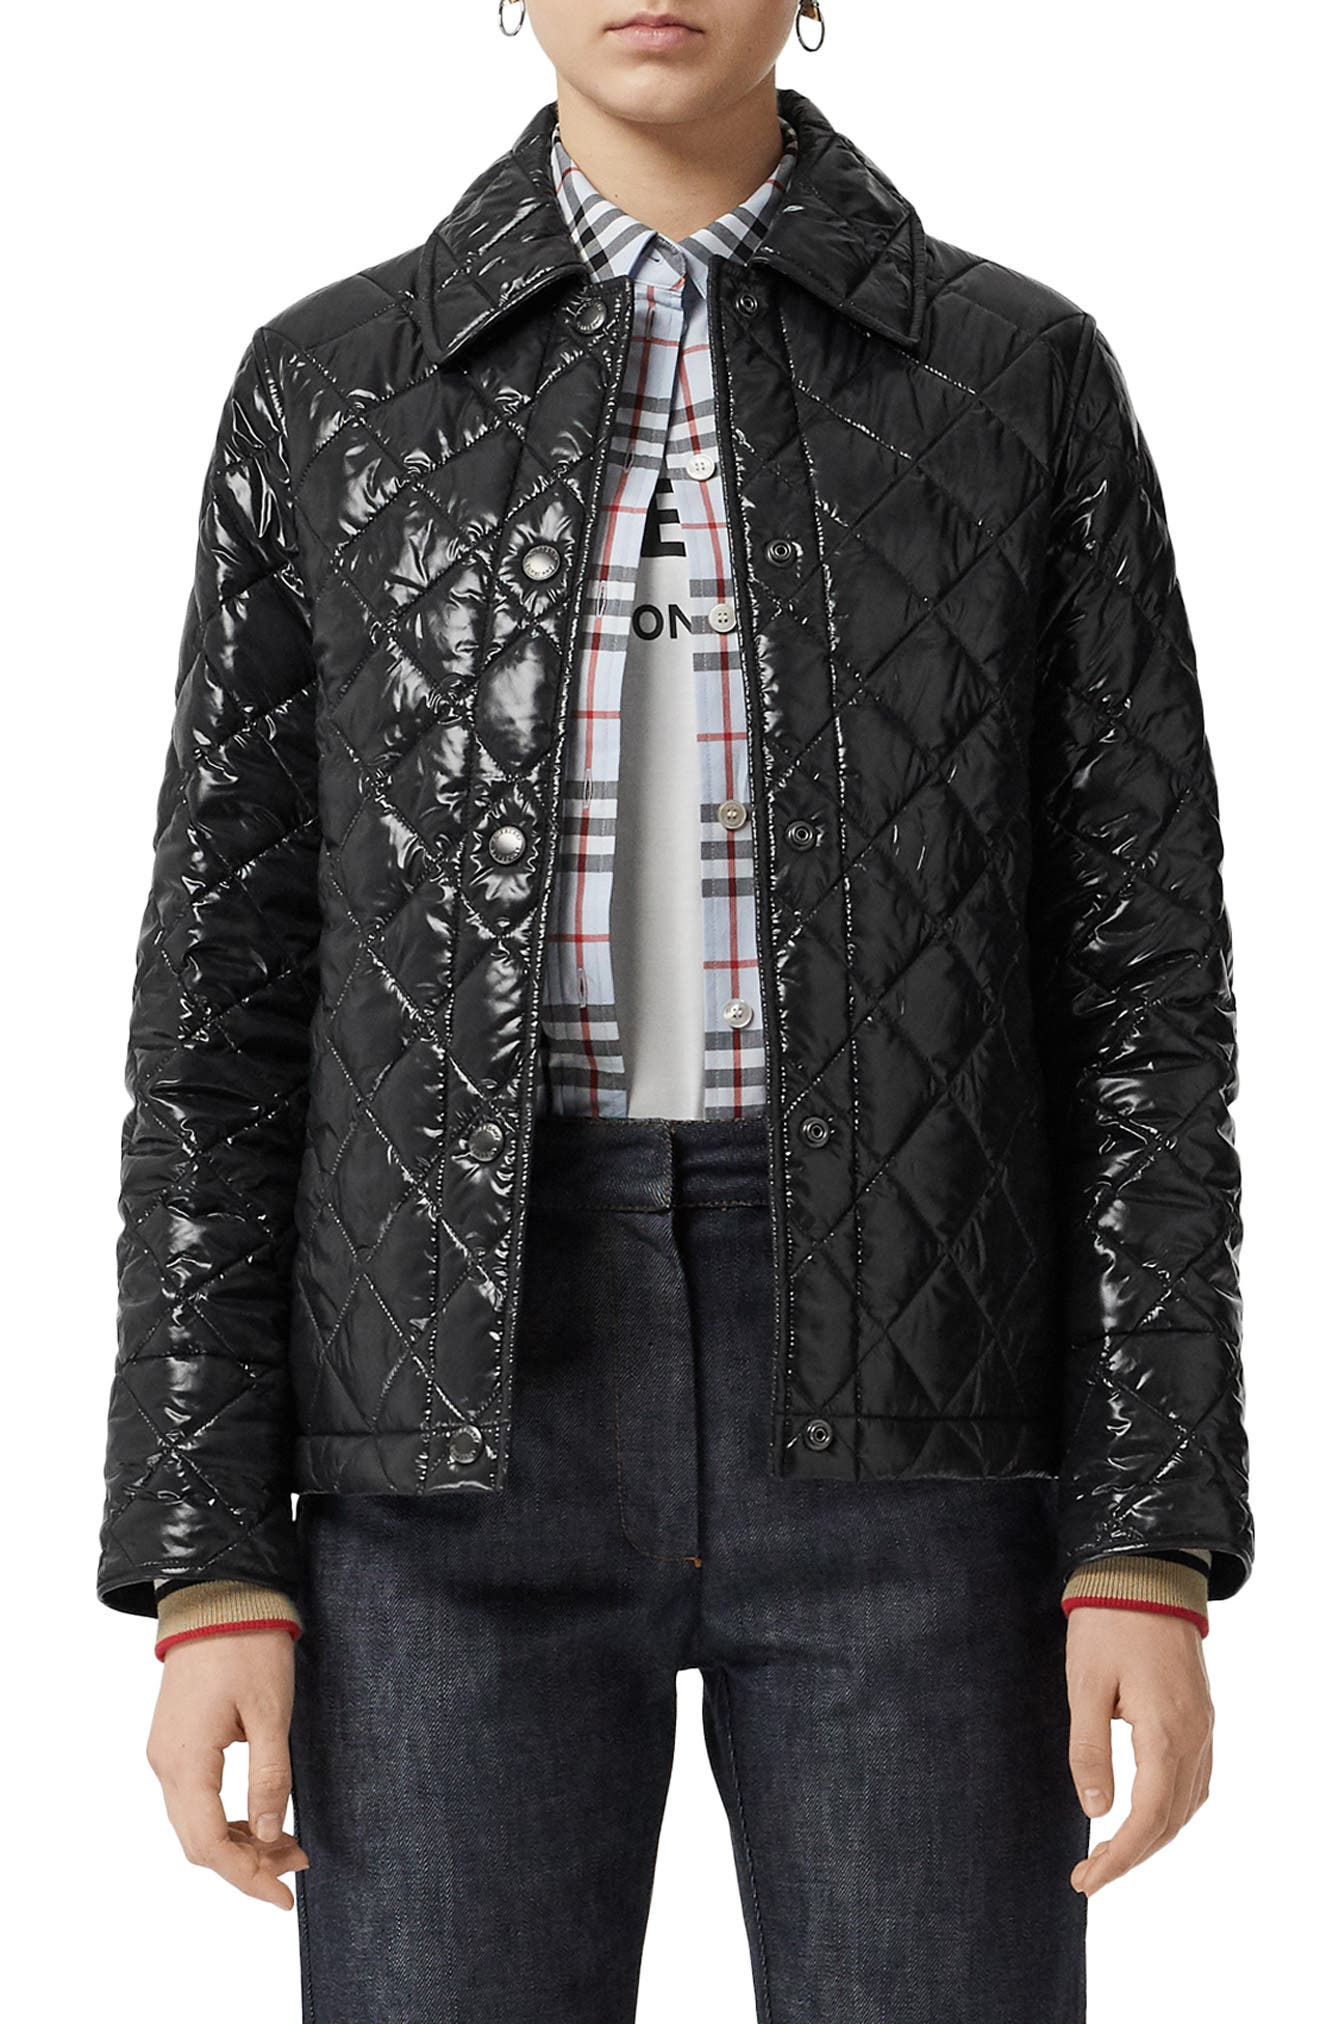 BURBERRY, Heathfield Frinton Knit Cuff Quilted Jacket, Main thumbnail 1, color, BLACK